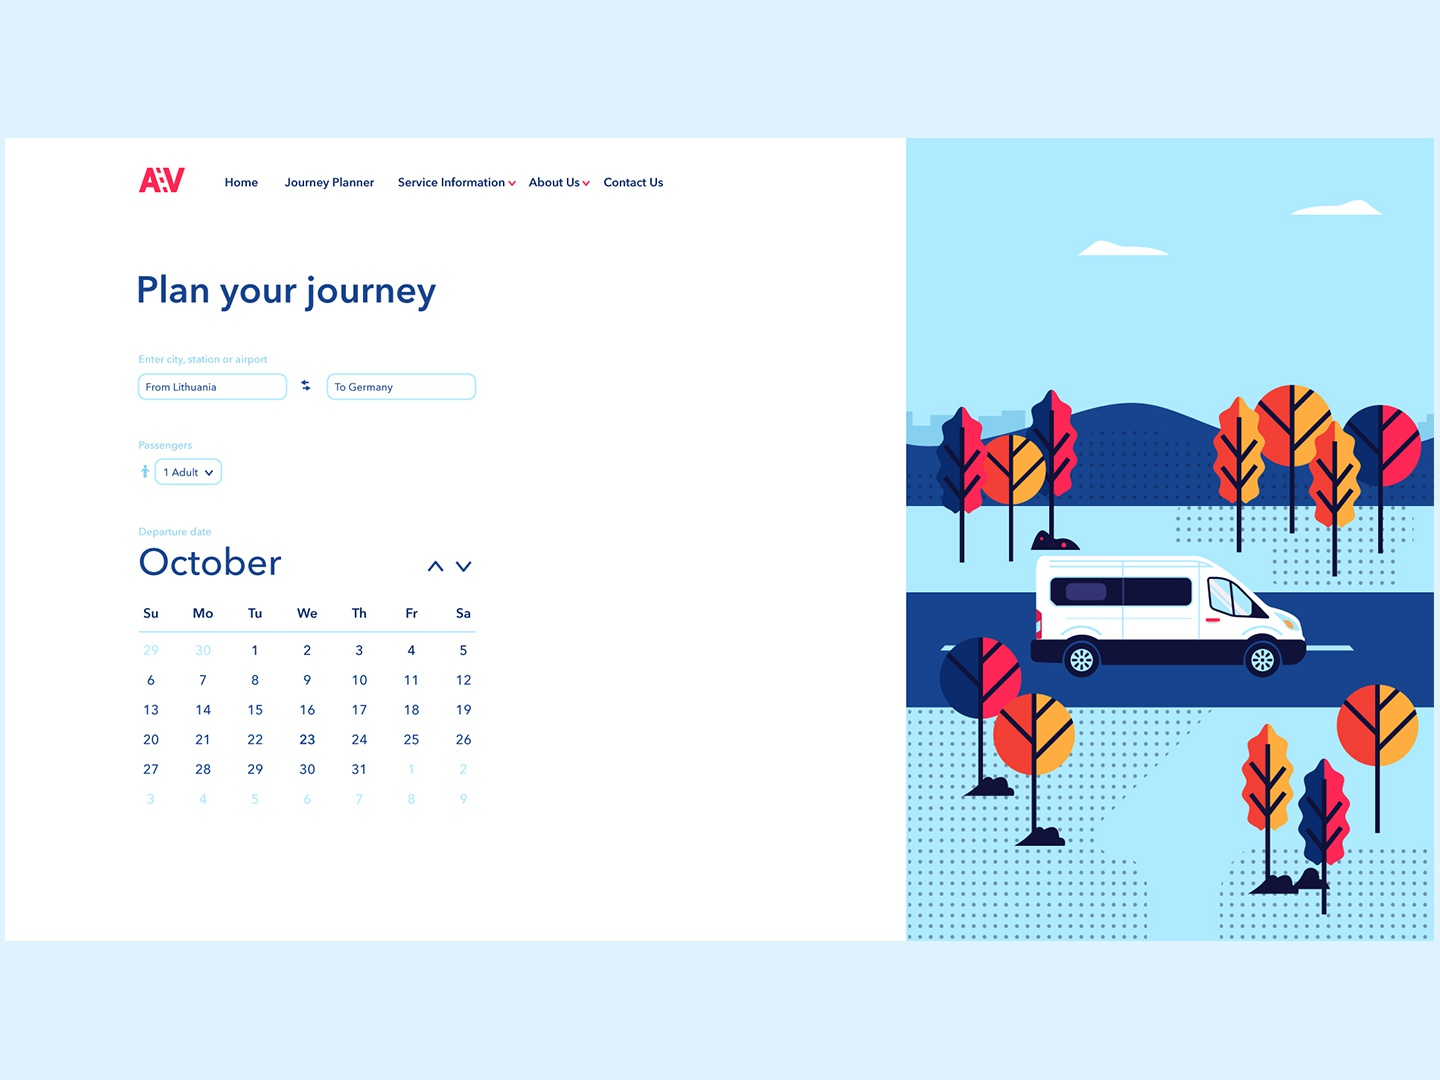 Andrius veza calendar design by Nikodemas on Dribbble